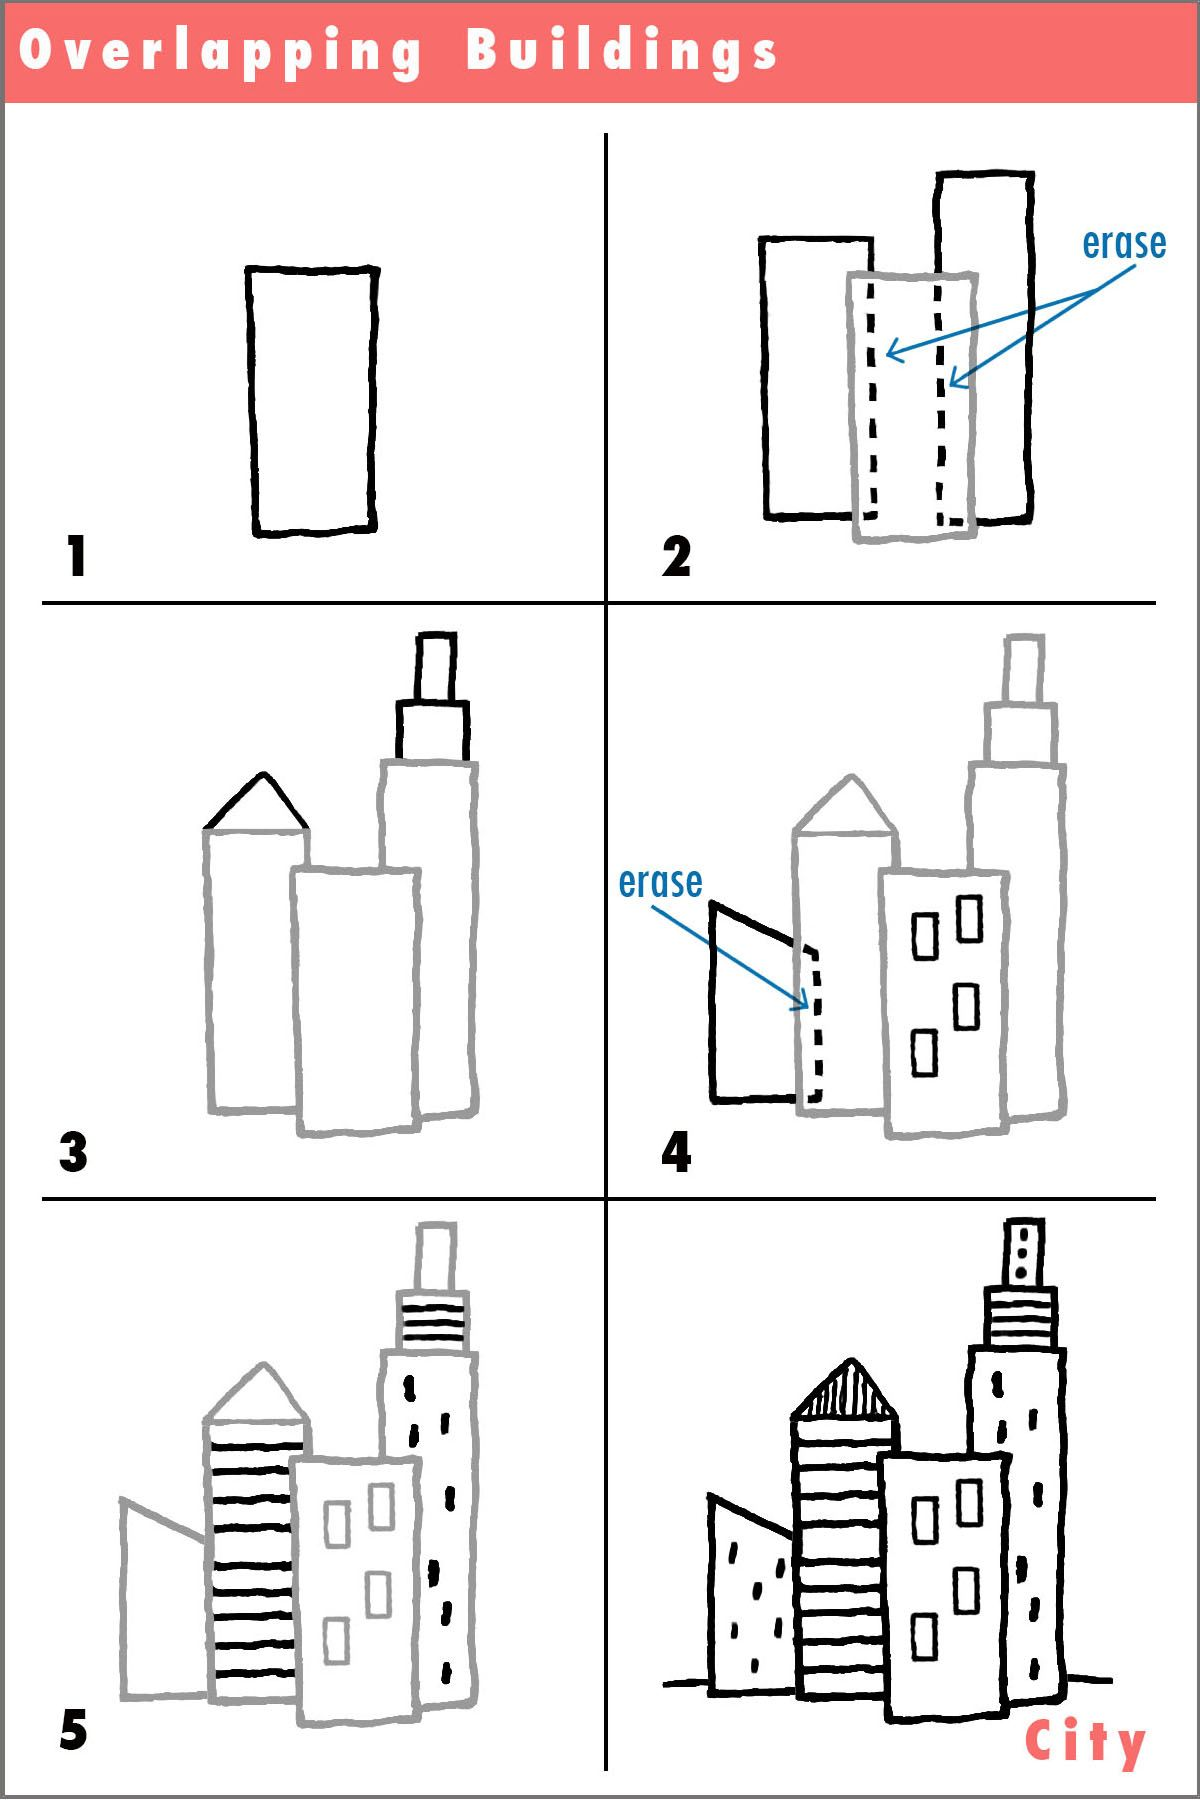 Draw A City Learning To Overlap With Images Easy Drawings